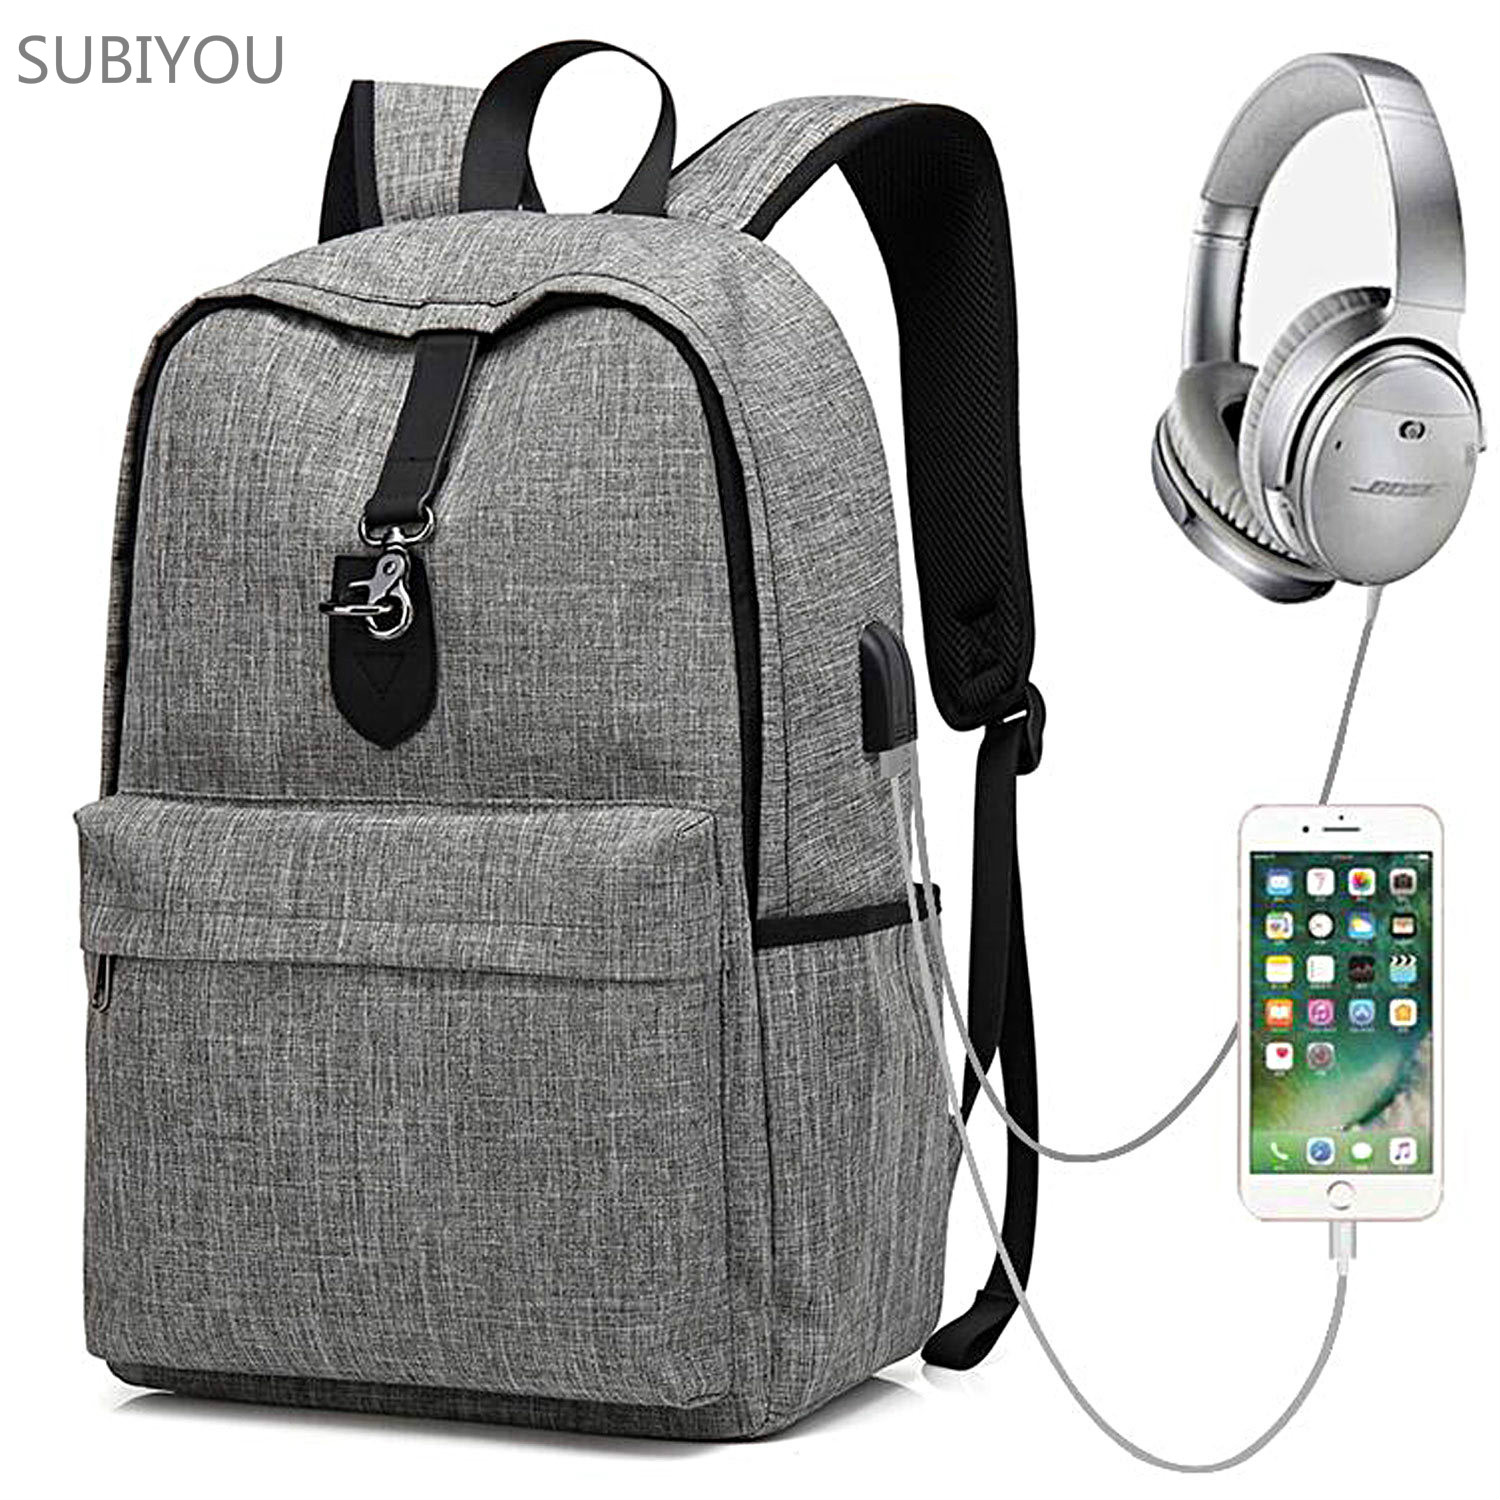 New School Season Backpack Gray USB Charge 15.6 Inch Computer Knapsack Schoolbag Laptop Bag Men Business Travel Working Knapsack ozuko multi functional men backpack waterproof usb charge computer backpacks 15inch laptop bag creative student school bags 2018